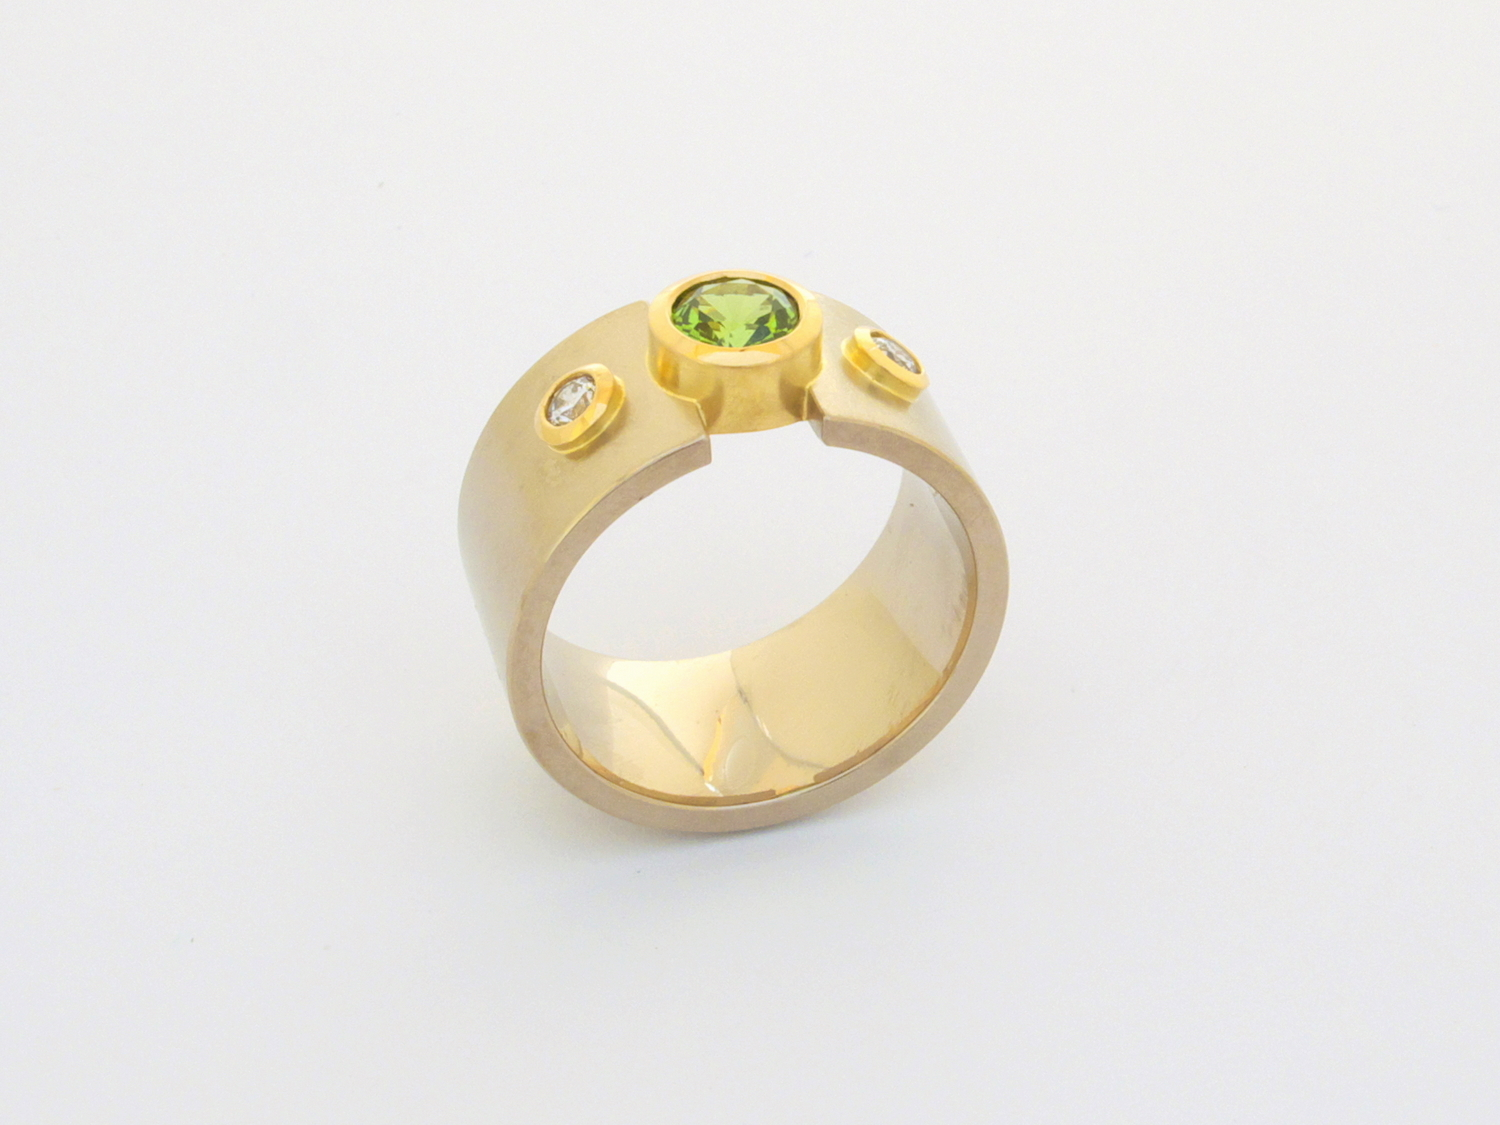 18ct white & yellow gold engagement ring set with clients own diamonds and a tsavorite garnet